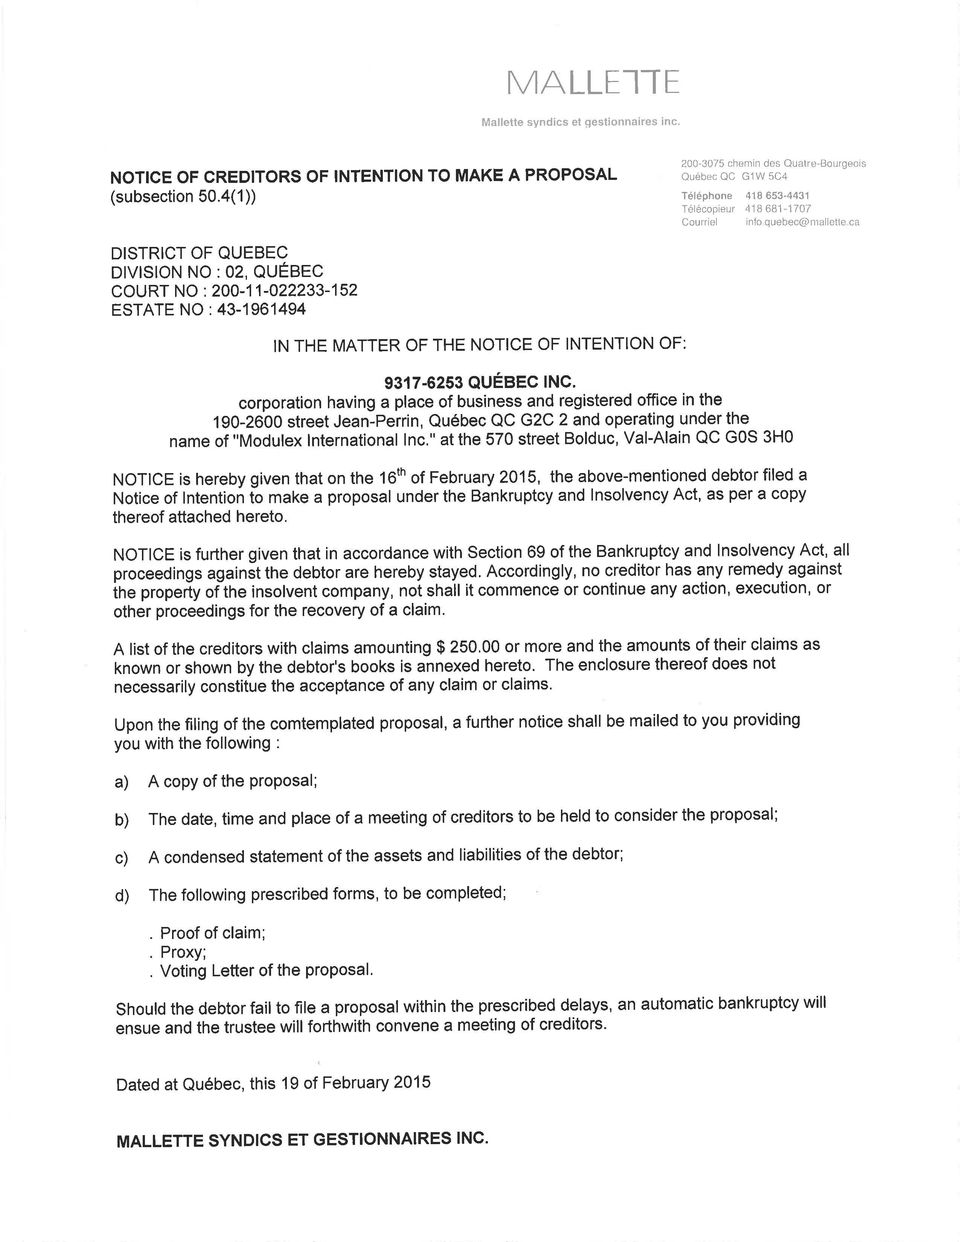 200-11-022233-152 ESTATE NO : 43-1 961494 IN THE MATTER OF THE NOTICE OF INTENTION OF: 9317-6253 QUÉBEC lnc.